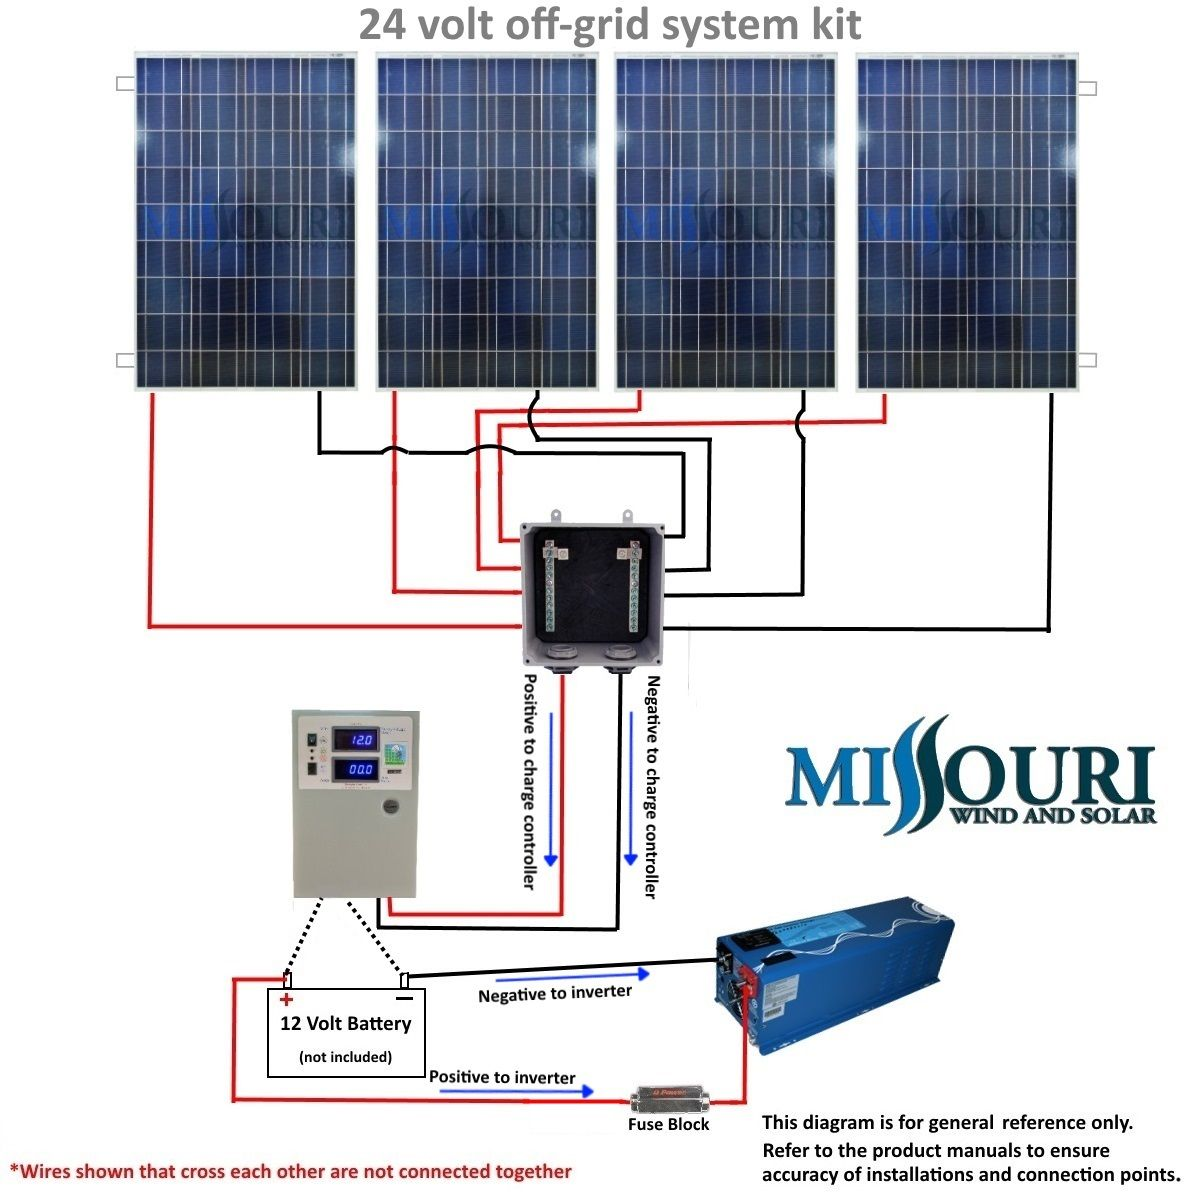 24v Solar Panel Wiring Diagram And Ebooks Charge Controller Wire 24 Volt Todays Rh 5 14 9 1813weddingbarn Com System